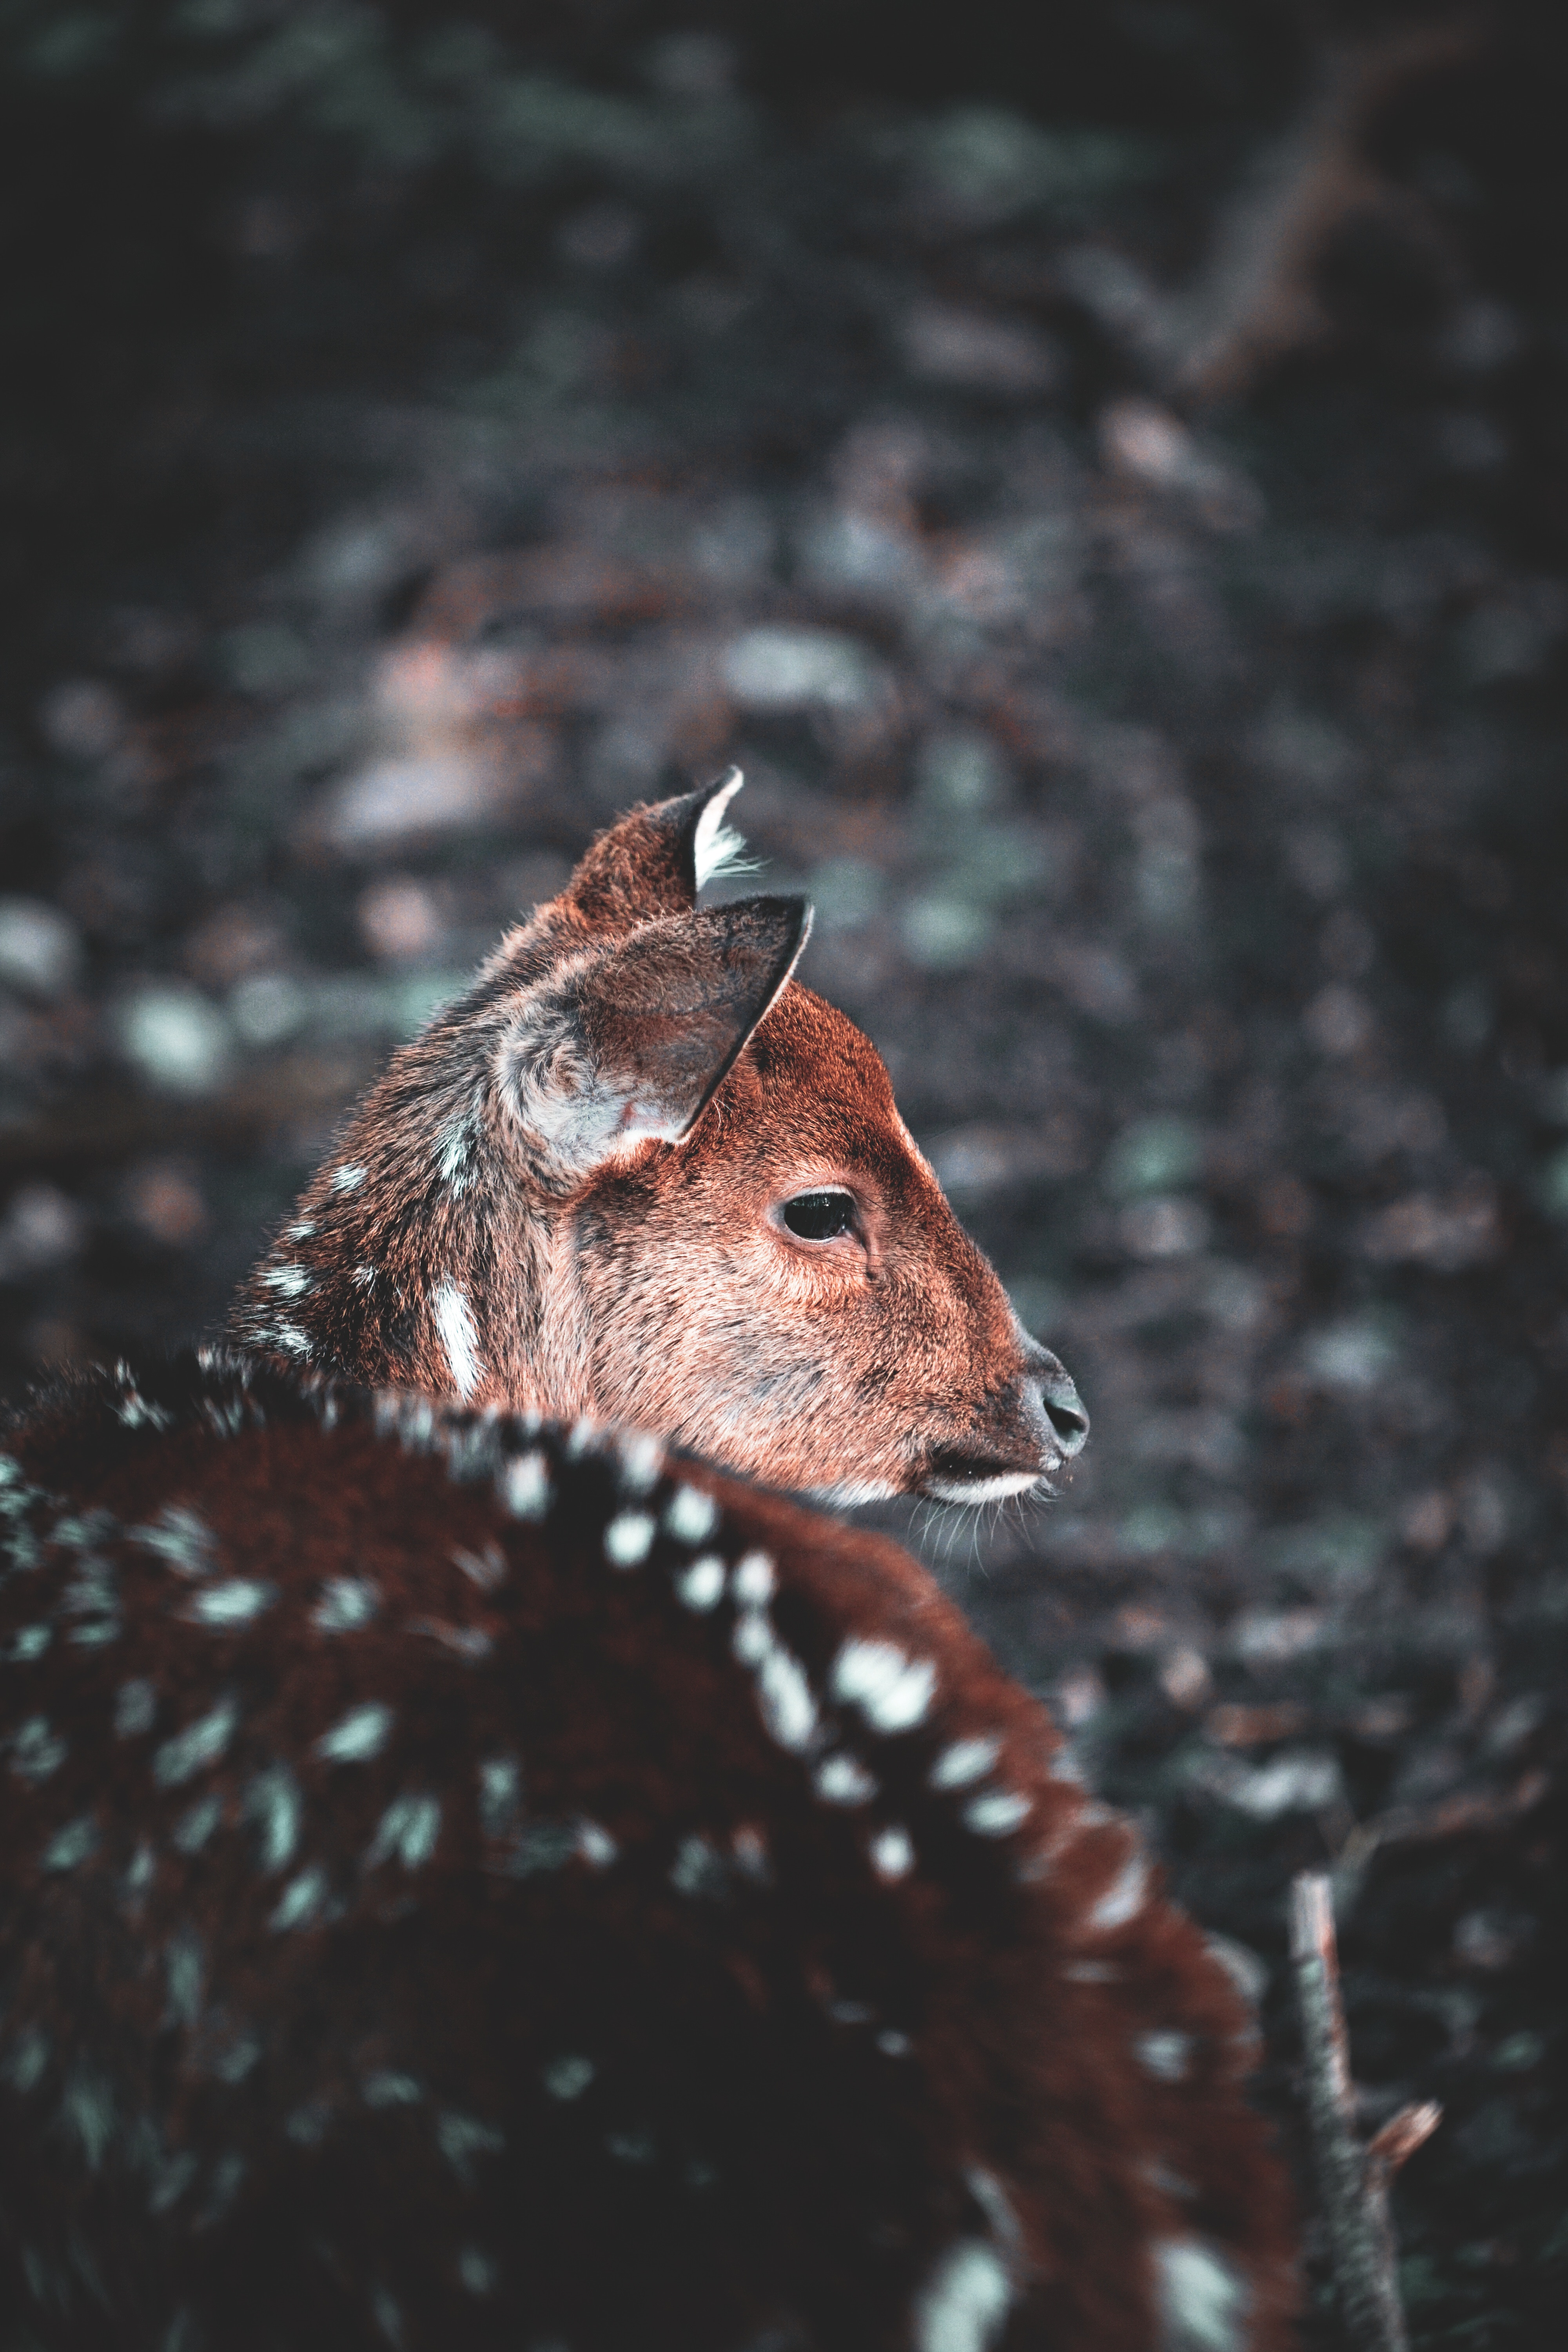 67711 download wallpaper Animals, Deer, Muzzle, Blur, Smooth, Wildlife screensavers and pictures for free